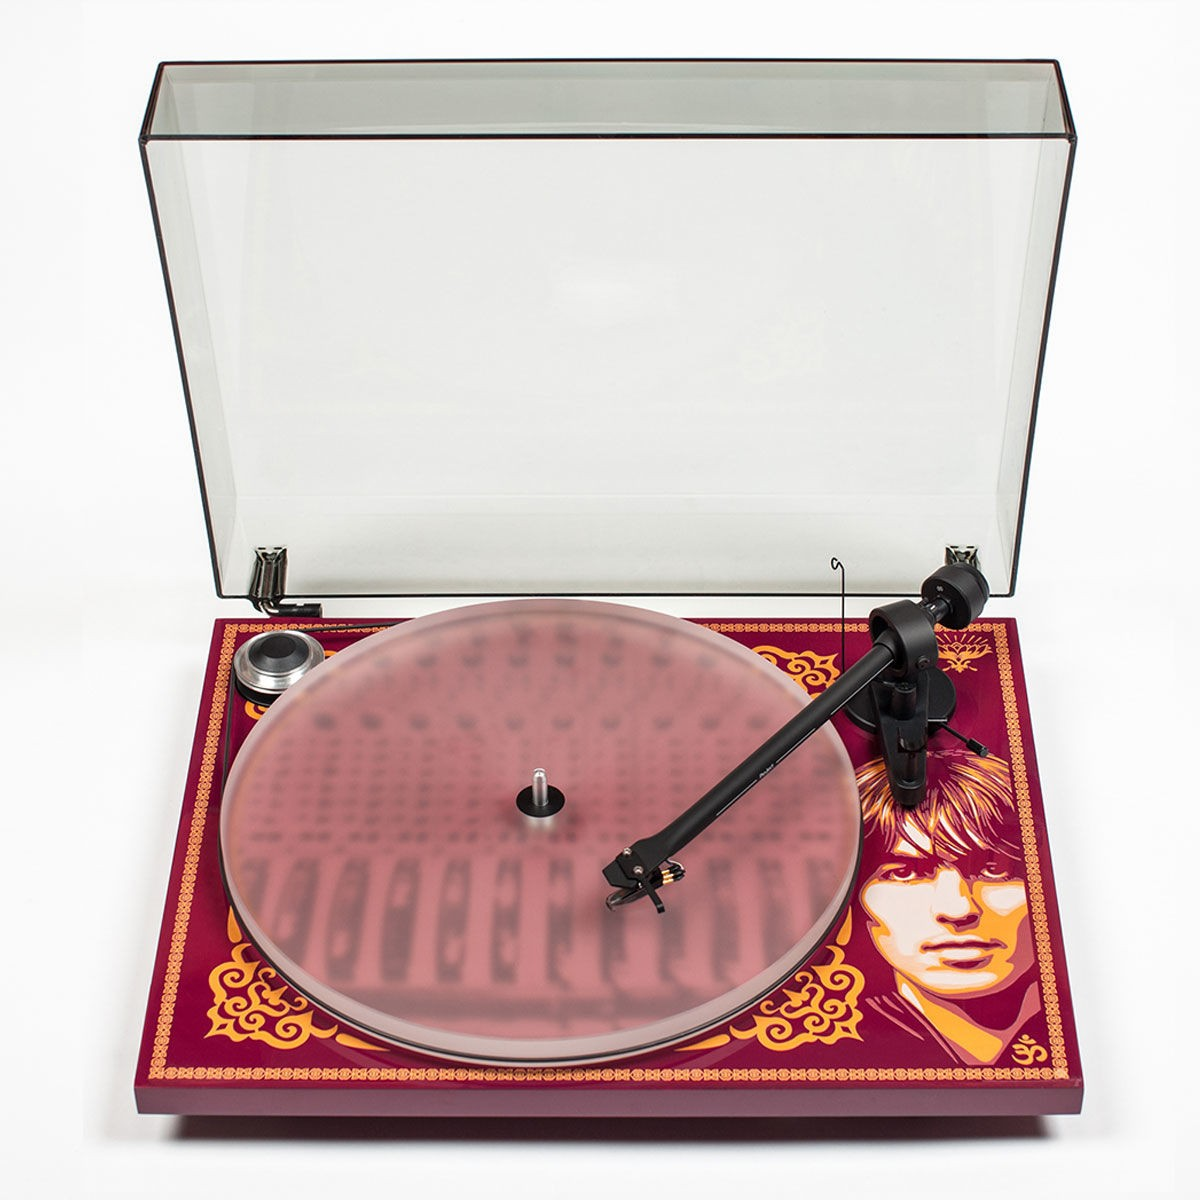 Project George Harrison Turntable